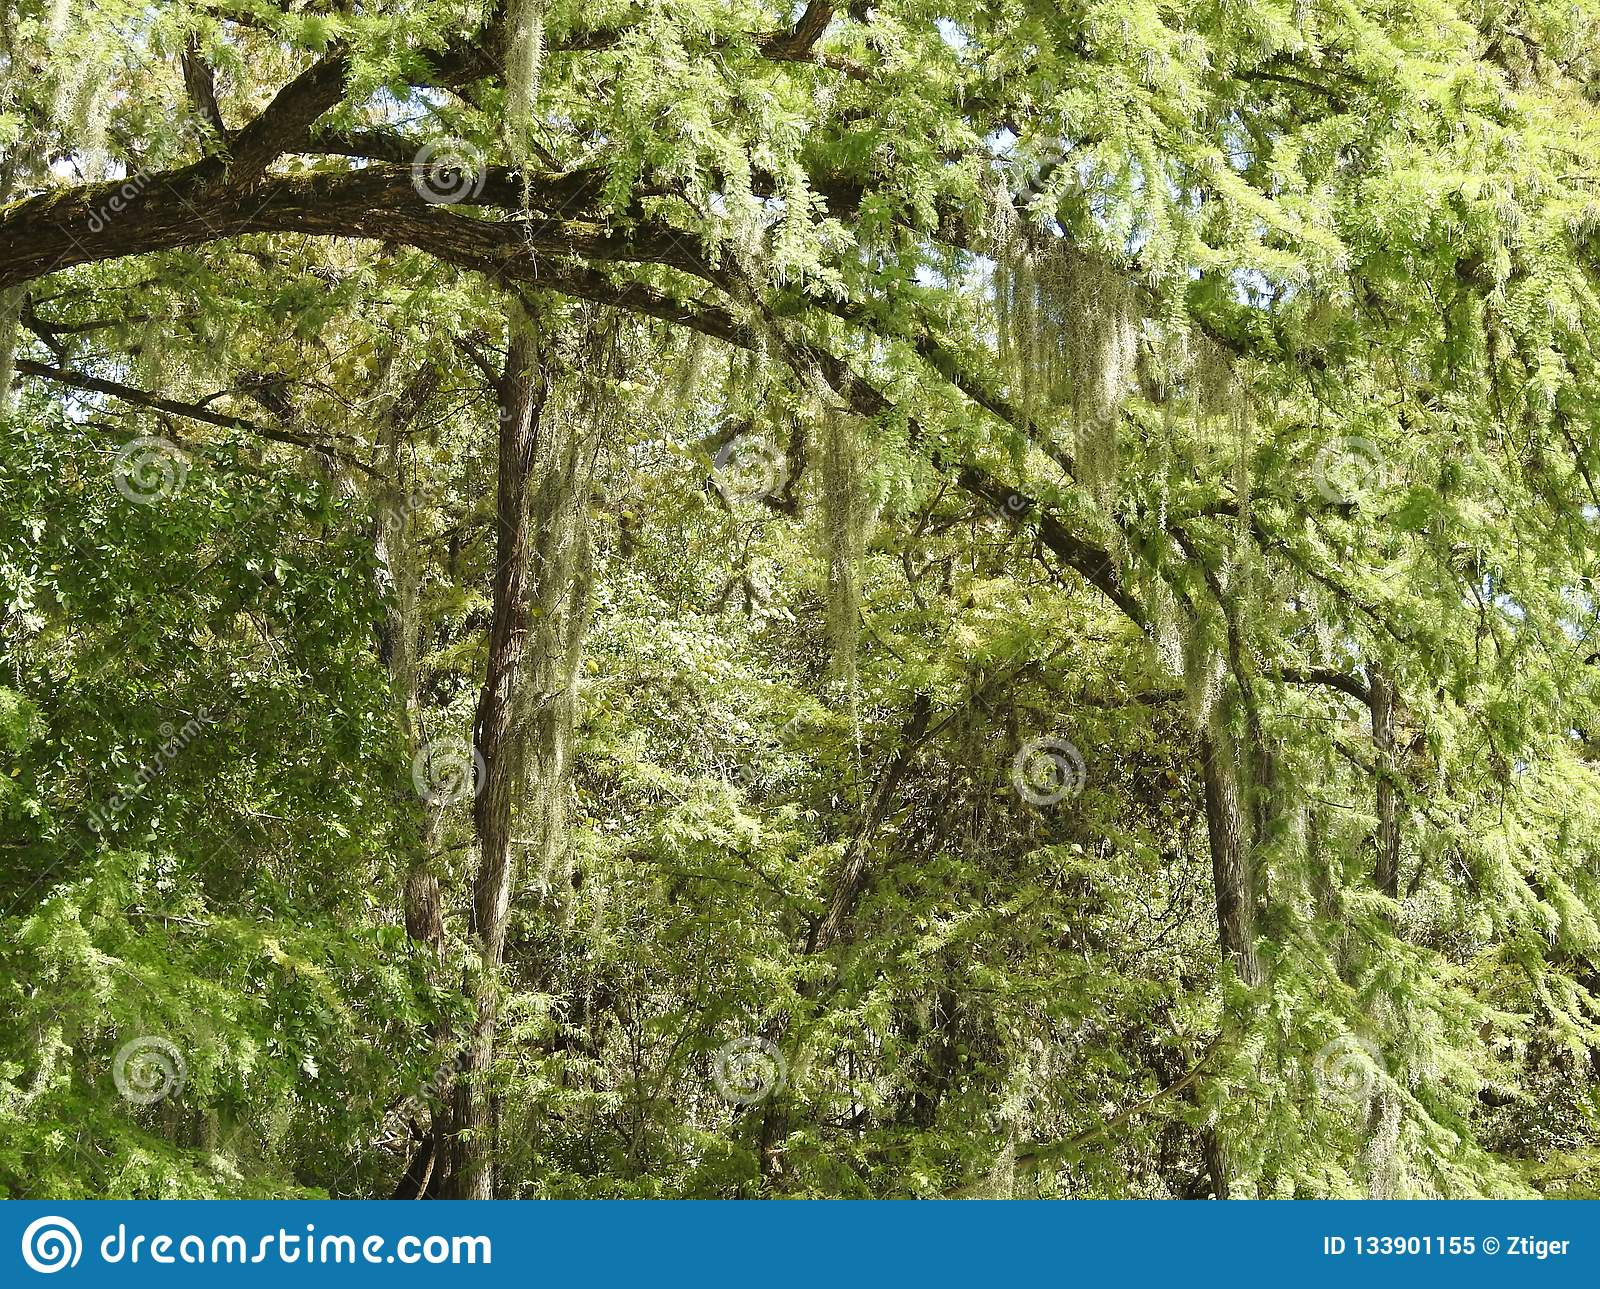 Spanish Moss Hanging from Bald Cypress Trees